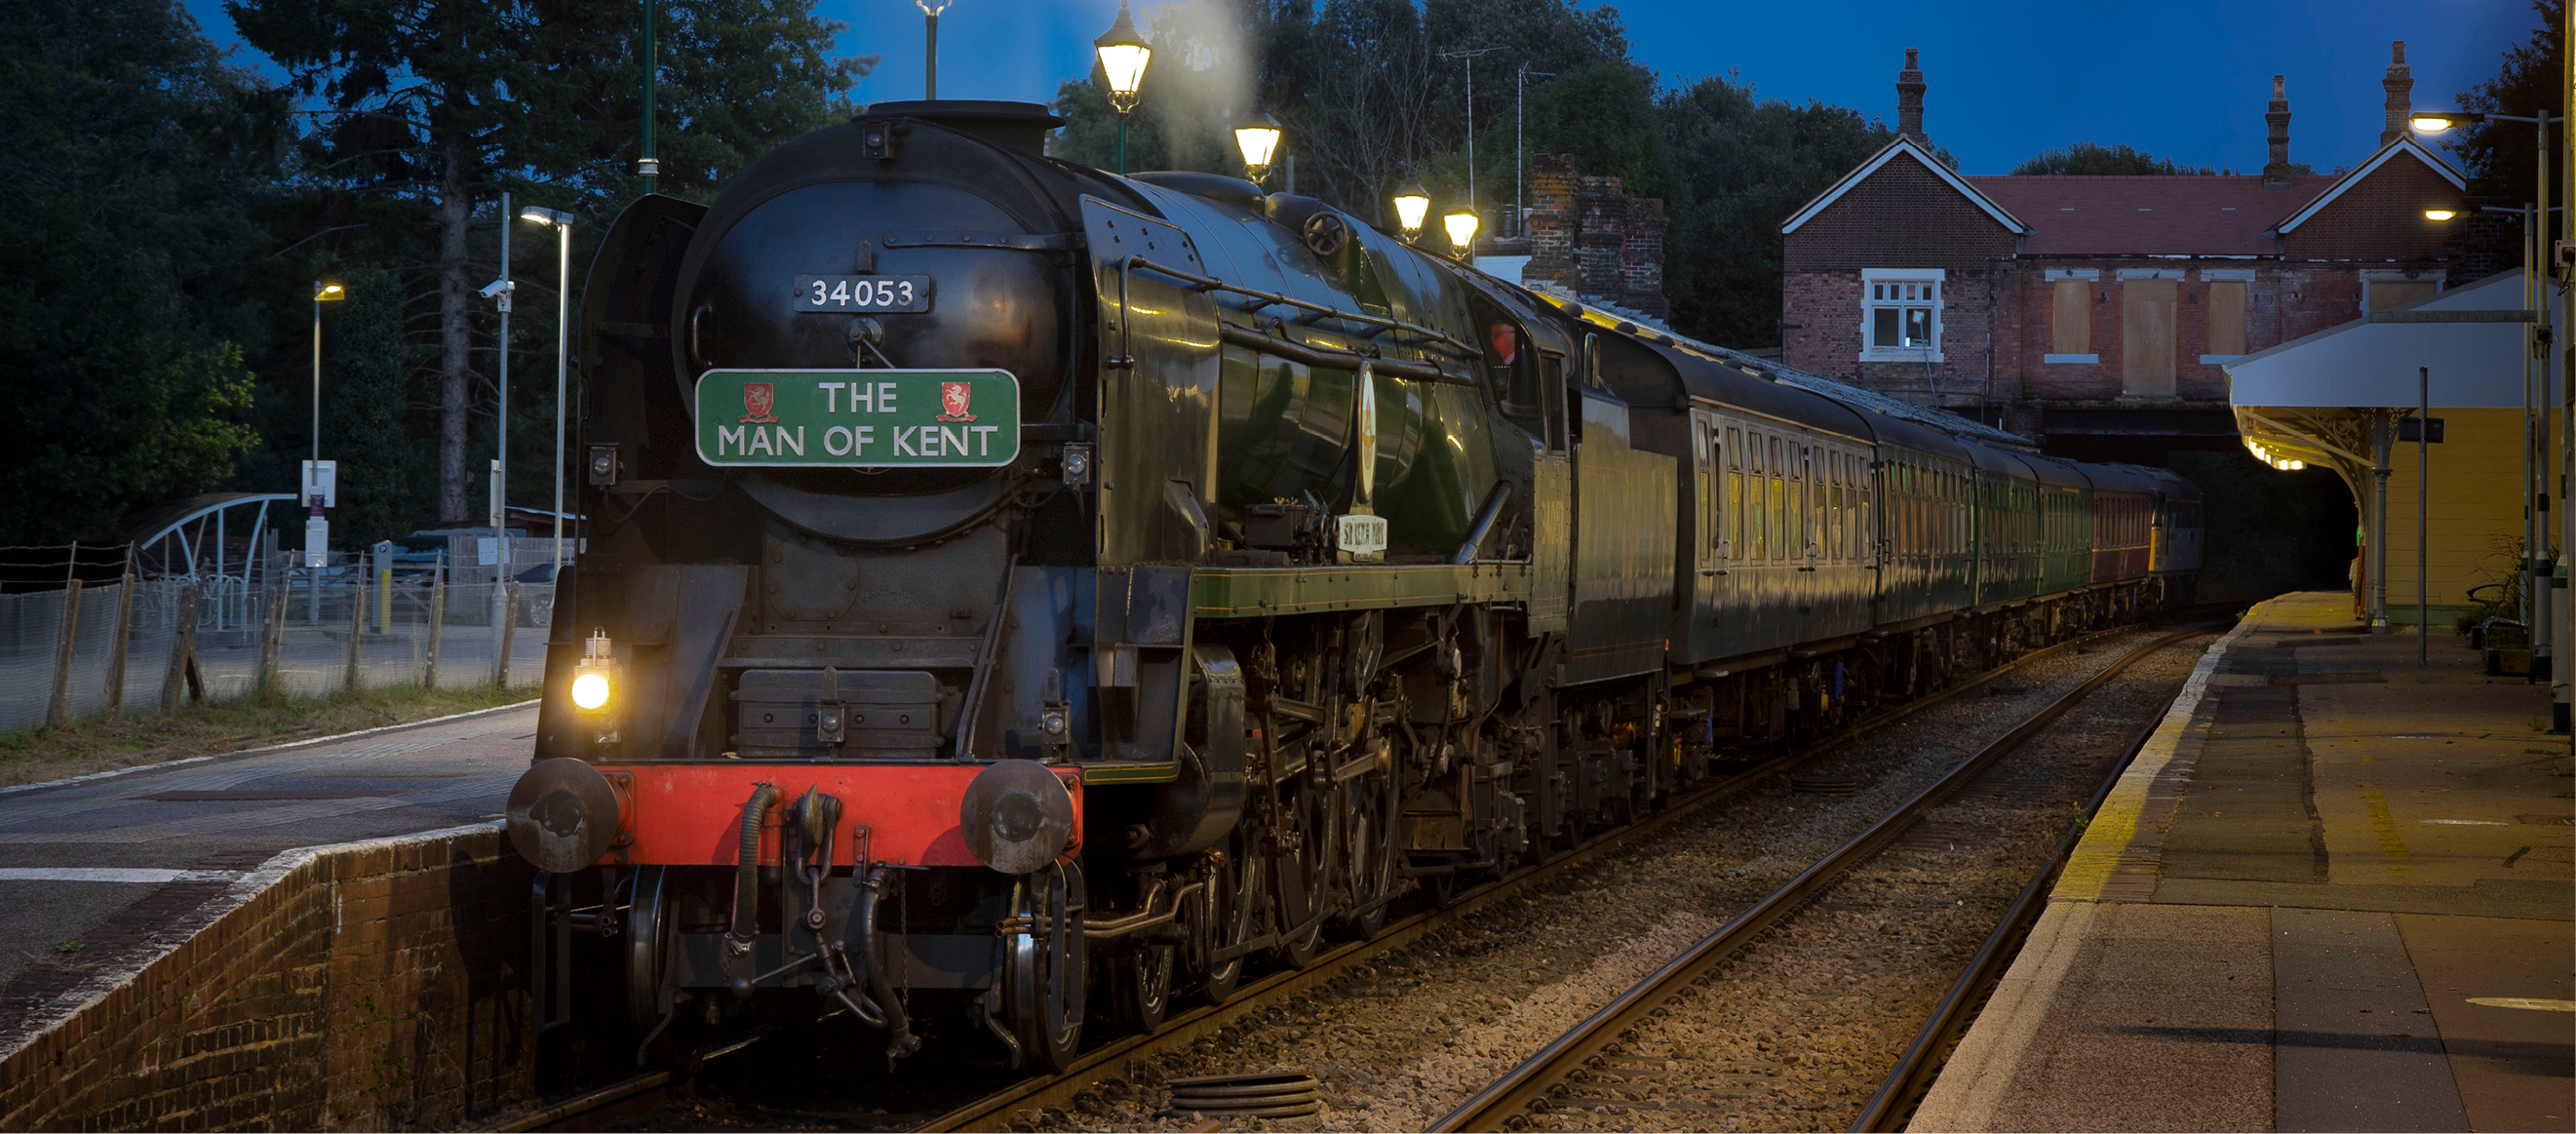 Fish & Chip Supper - with Bulleid Pacific 'Sir Keith Park'